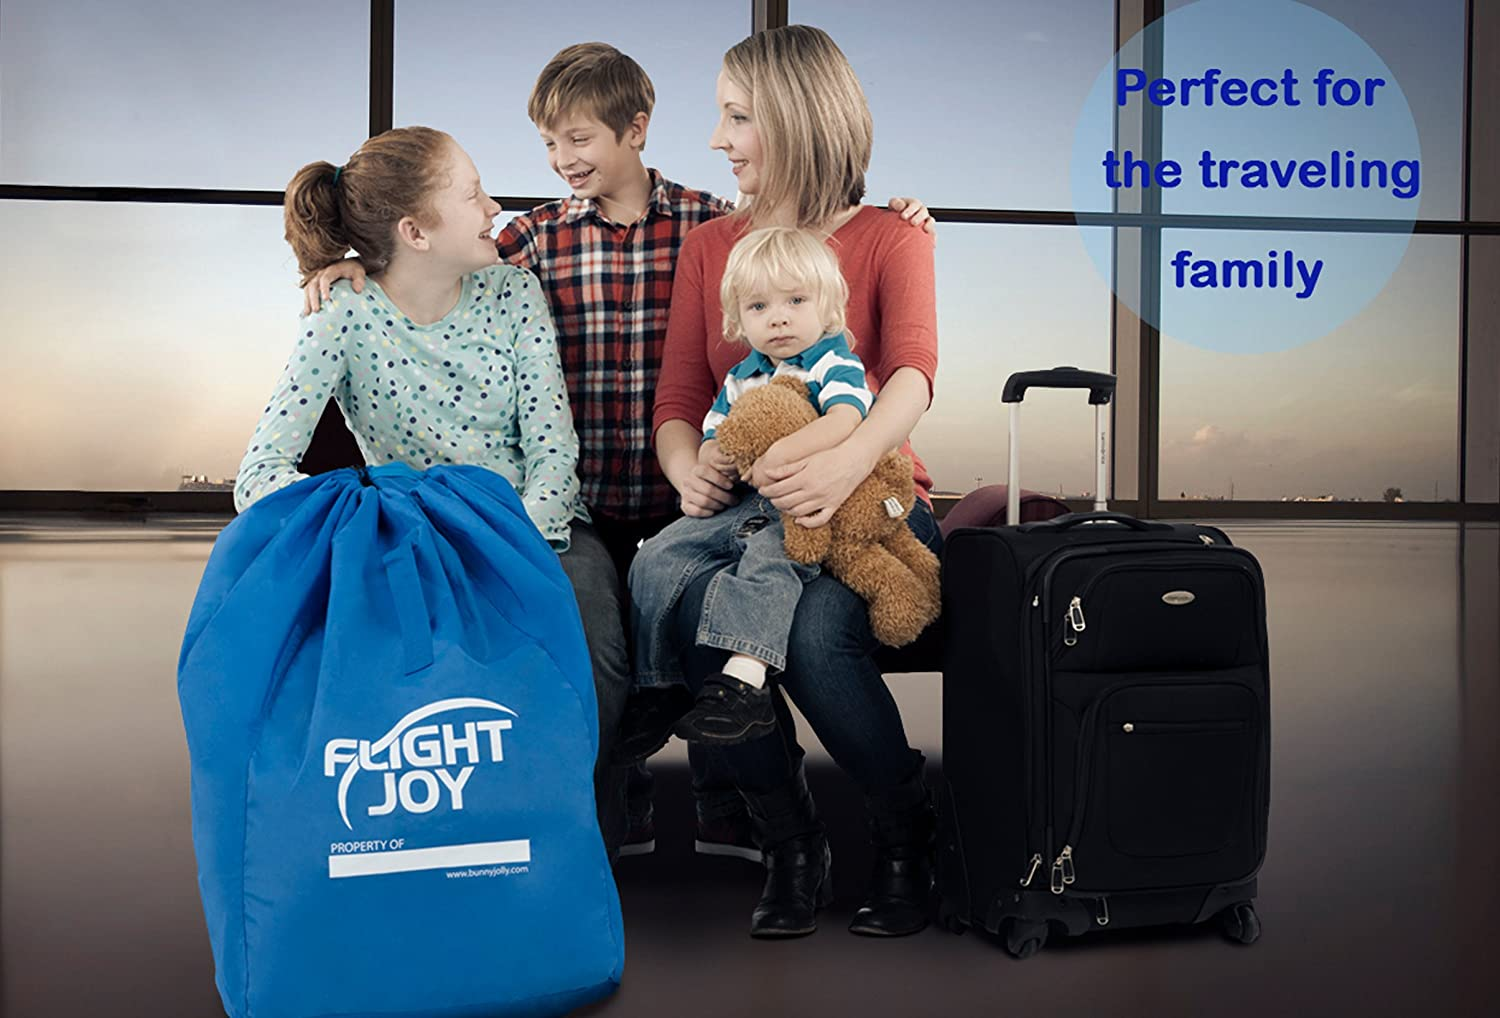 Ultra Durable Carseat Airplane Bag with Padded Shoulder Straps Must Have for Child CarSeats and Booster Car Seats Best Car Seat Travel Bag for Airport Gate Check